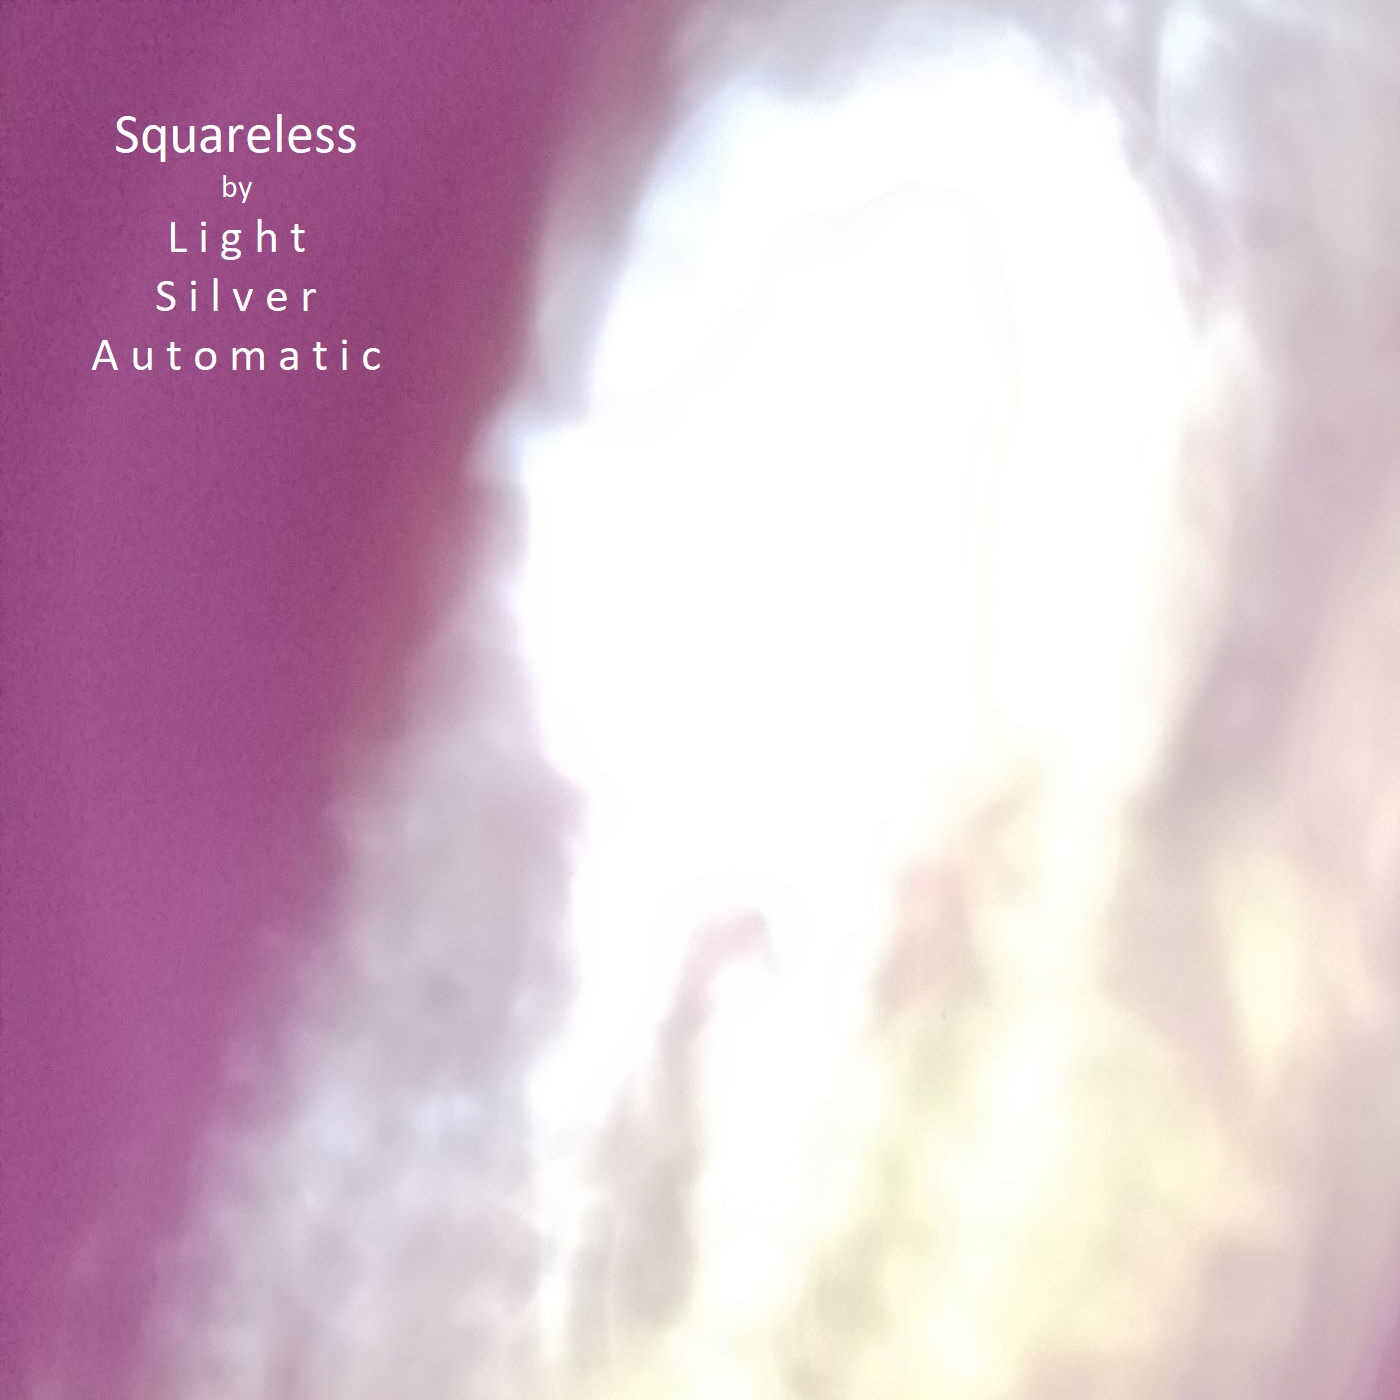 Squareless by Light Silver Automatic.cover.jpg